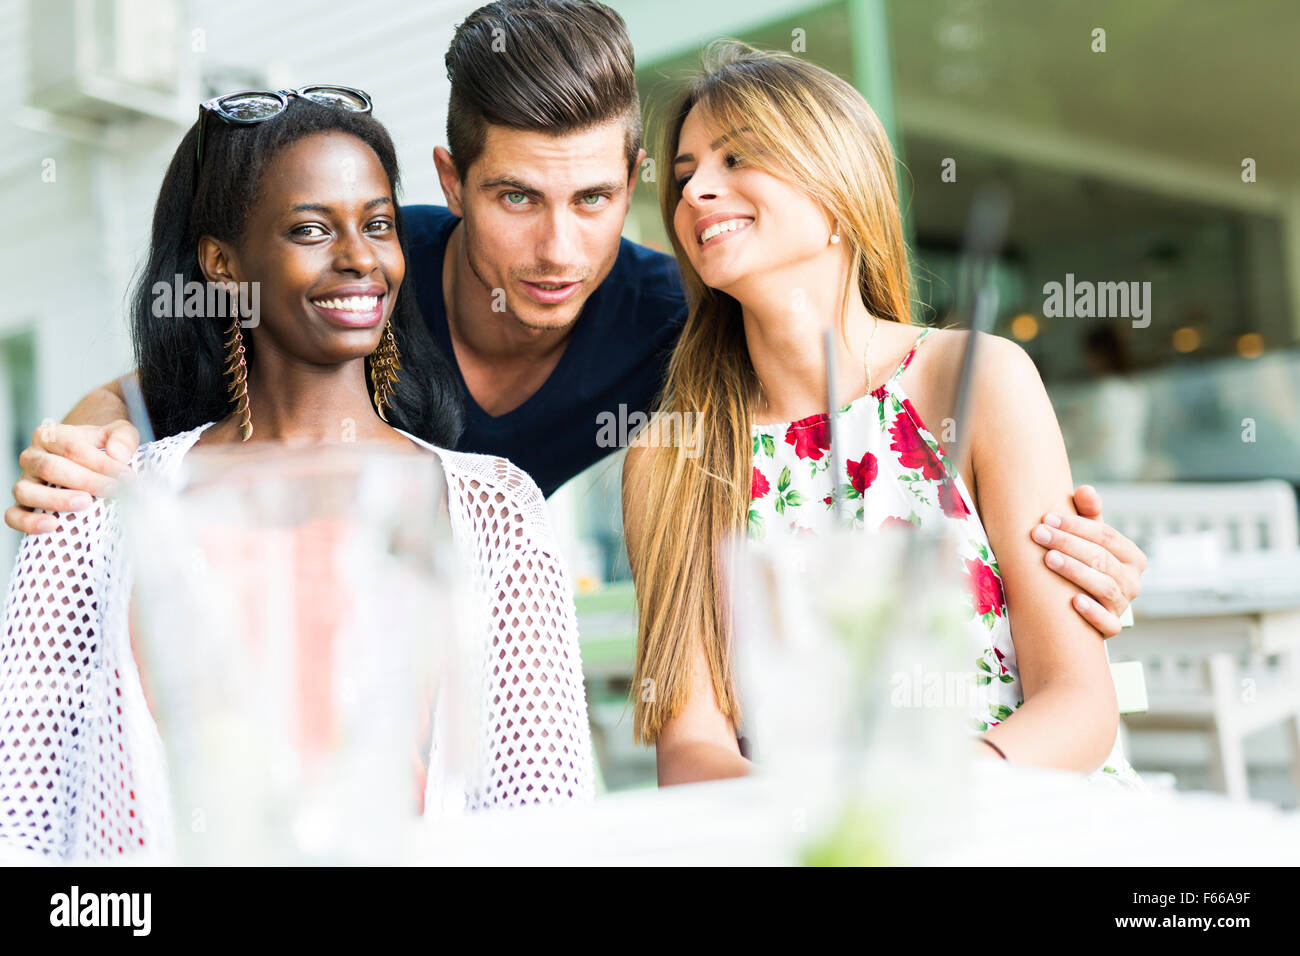 Happy young friends smiling outdoors being close to each other on a summer day - Stock Image